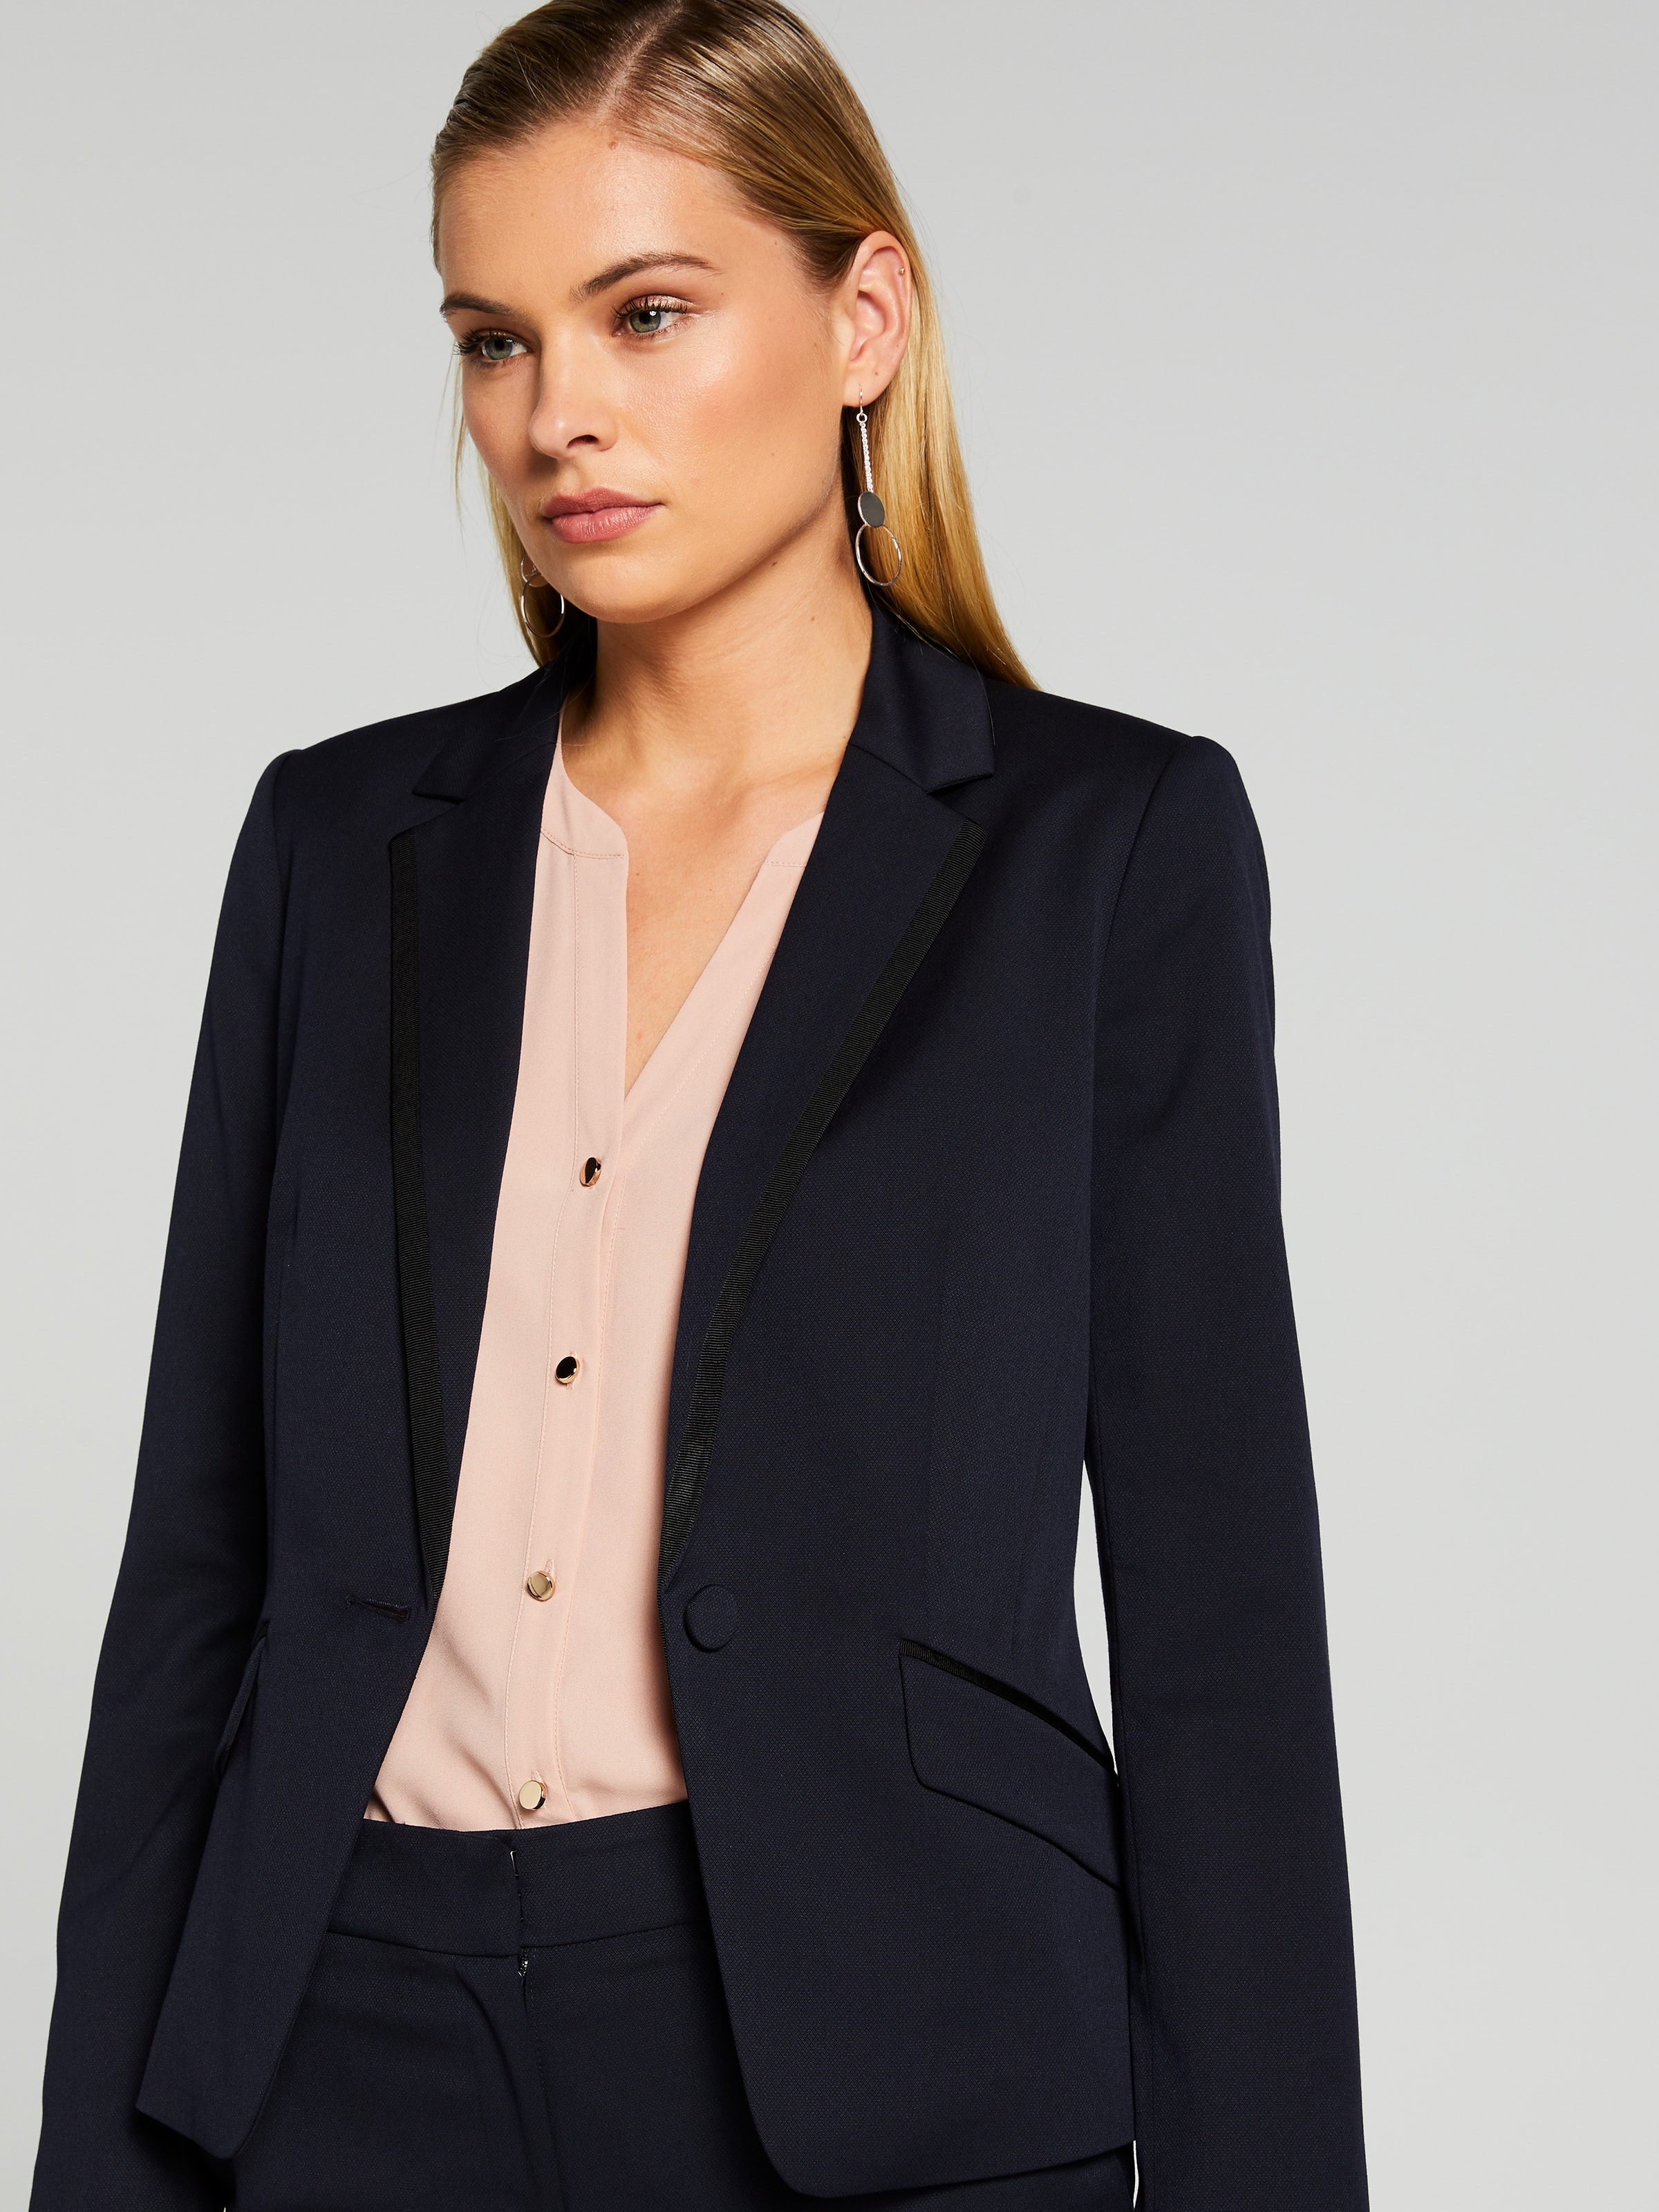 You Are Hired Suit Jacket